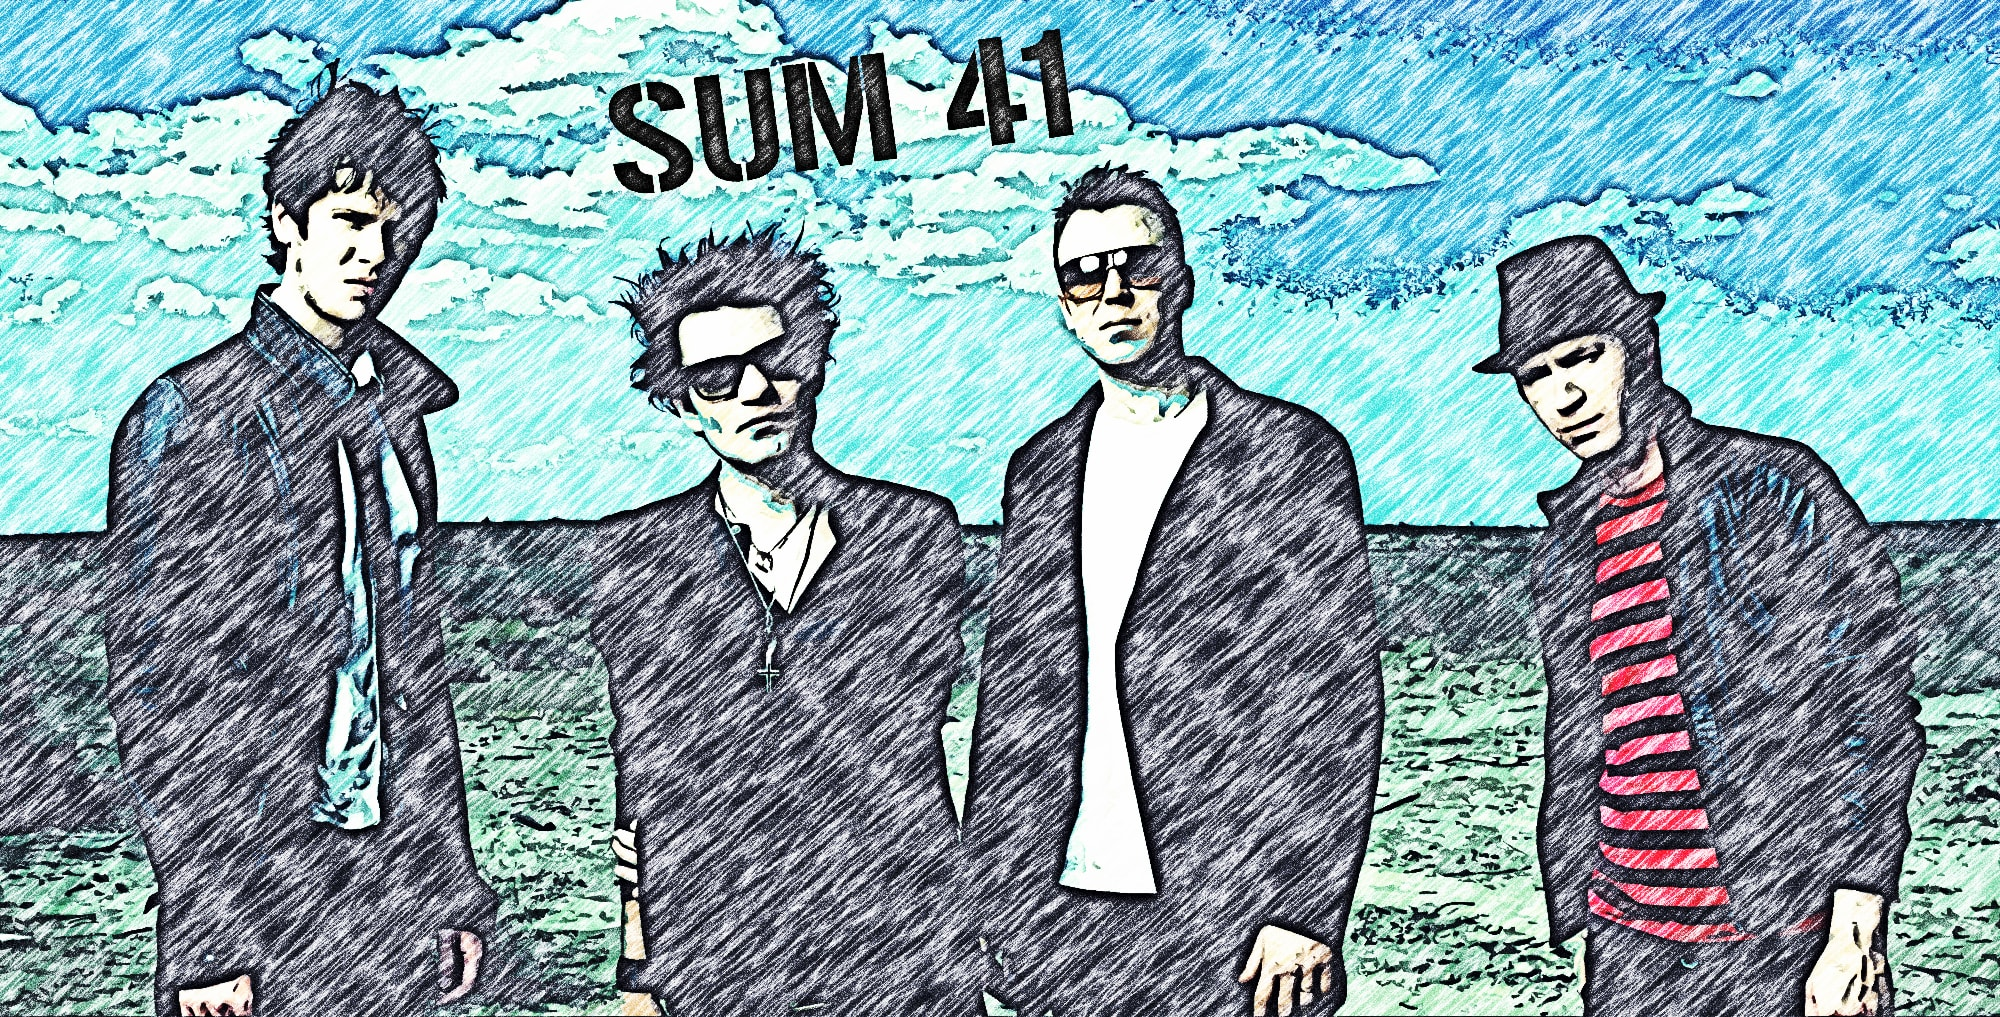 Sum 41 Full hd wallpapers